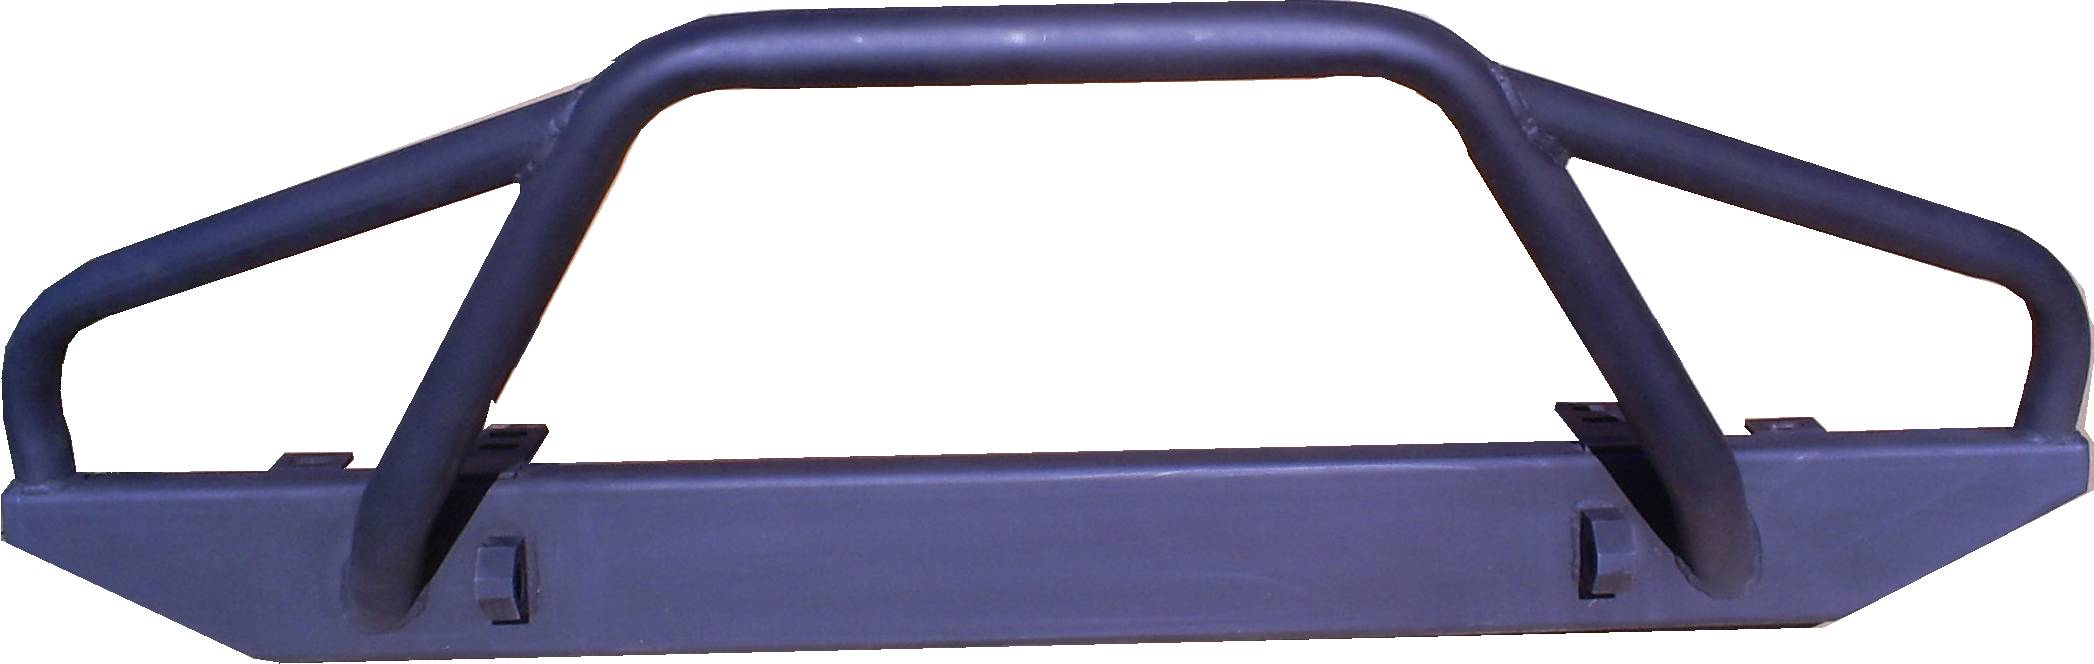 Jeep Rock Crawler Style Front Bumpers